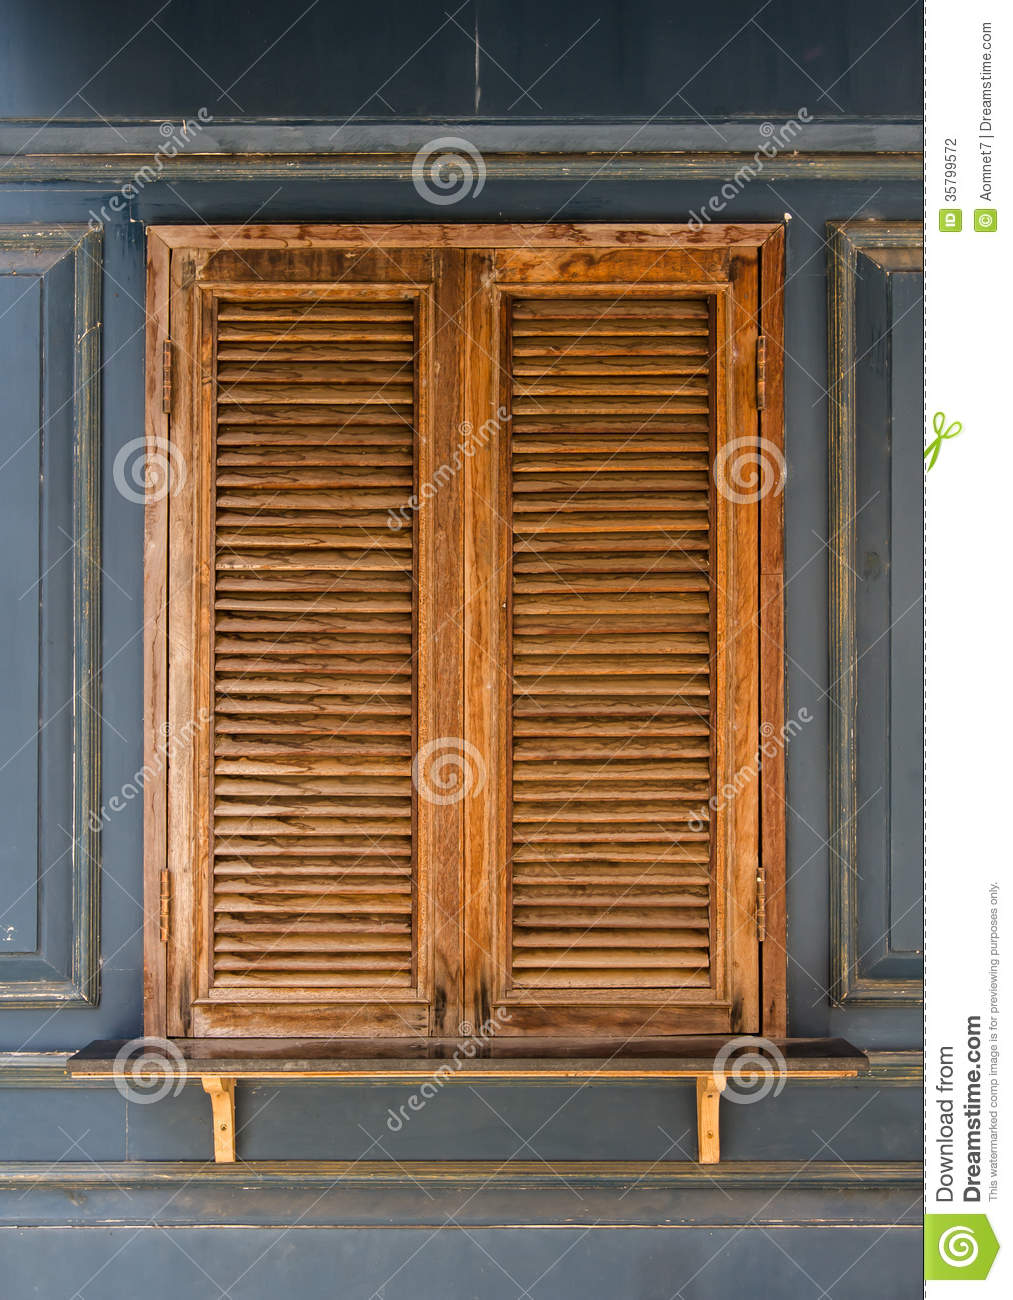 Old wooden windows stock photo image of villa front for Wooden windows